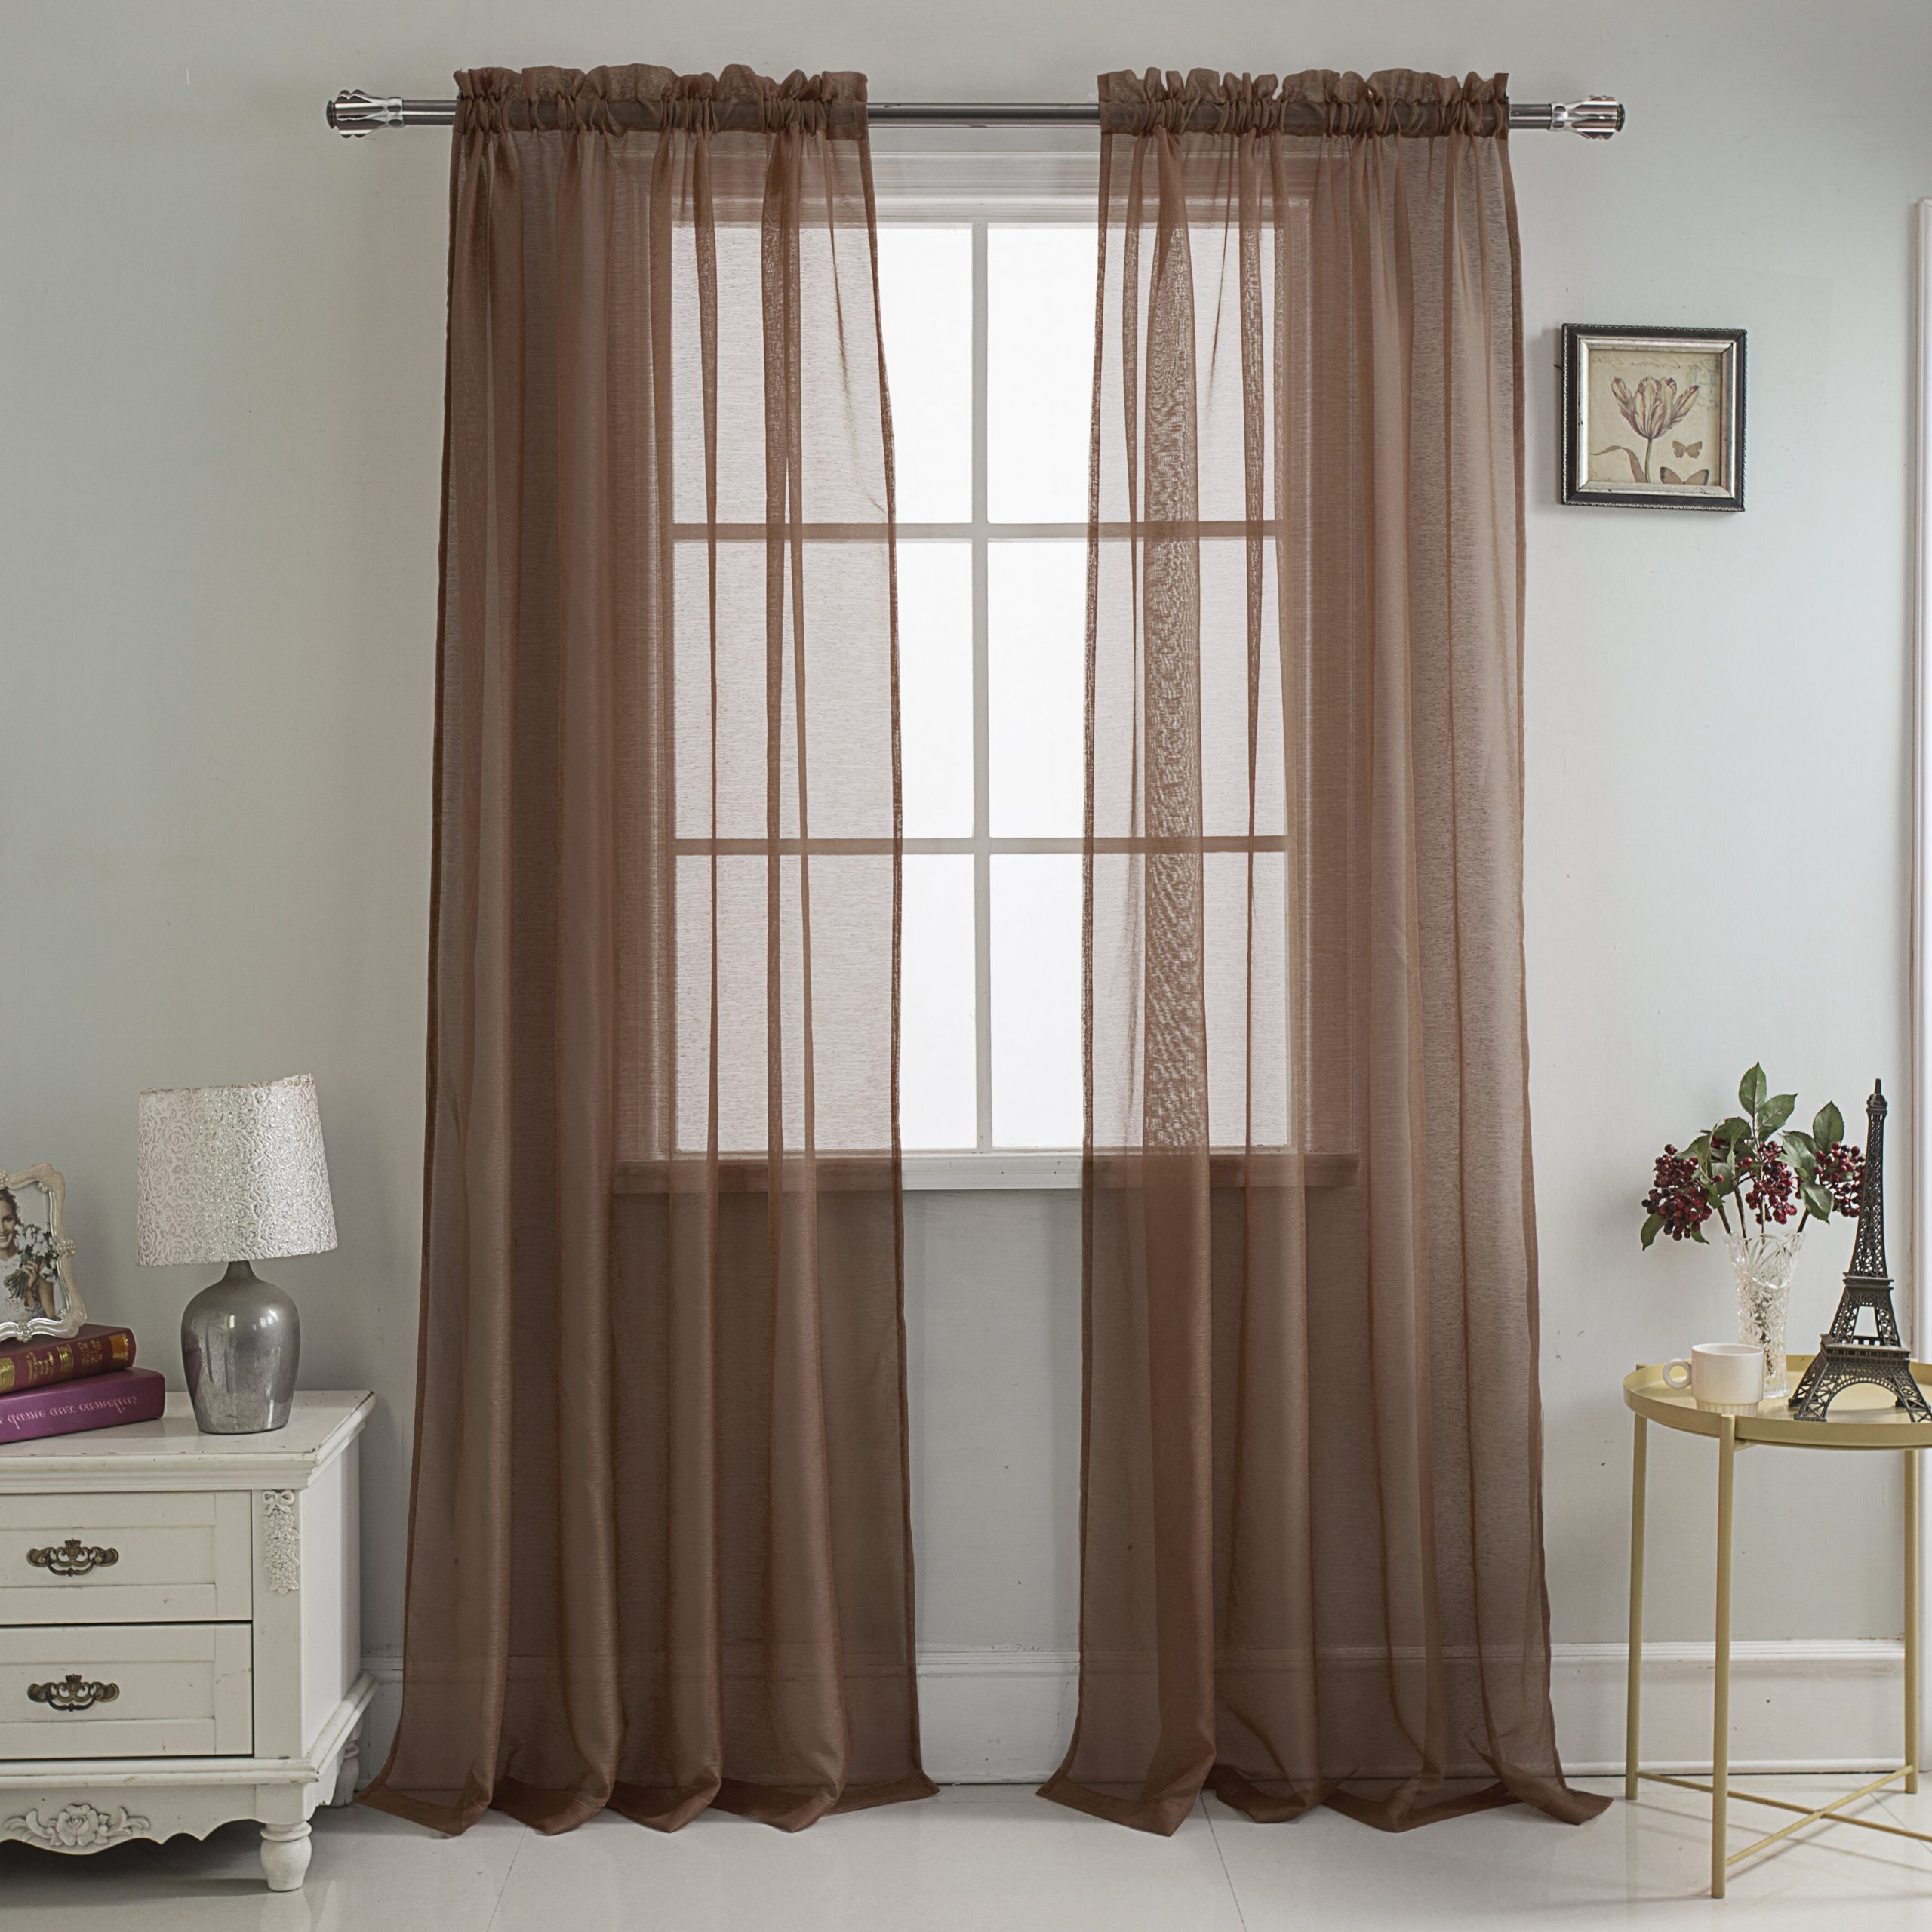 Daron Solid Sheer Rod Pocket Single Curtain Panel Throughout Fashionable Arm And Hammer Curtains Fresh Odor Neutralizing Single Curtain Panels (View 20 of 20)